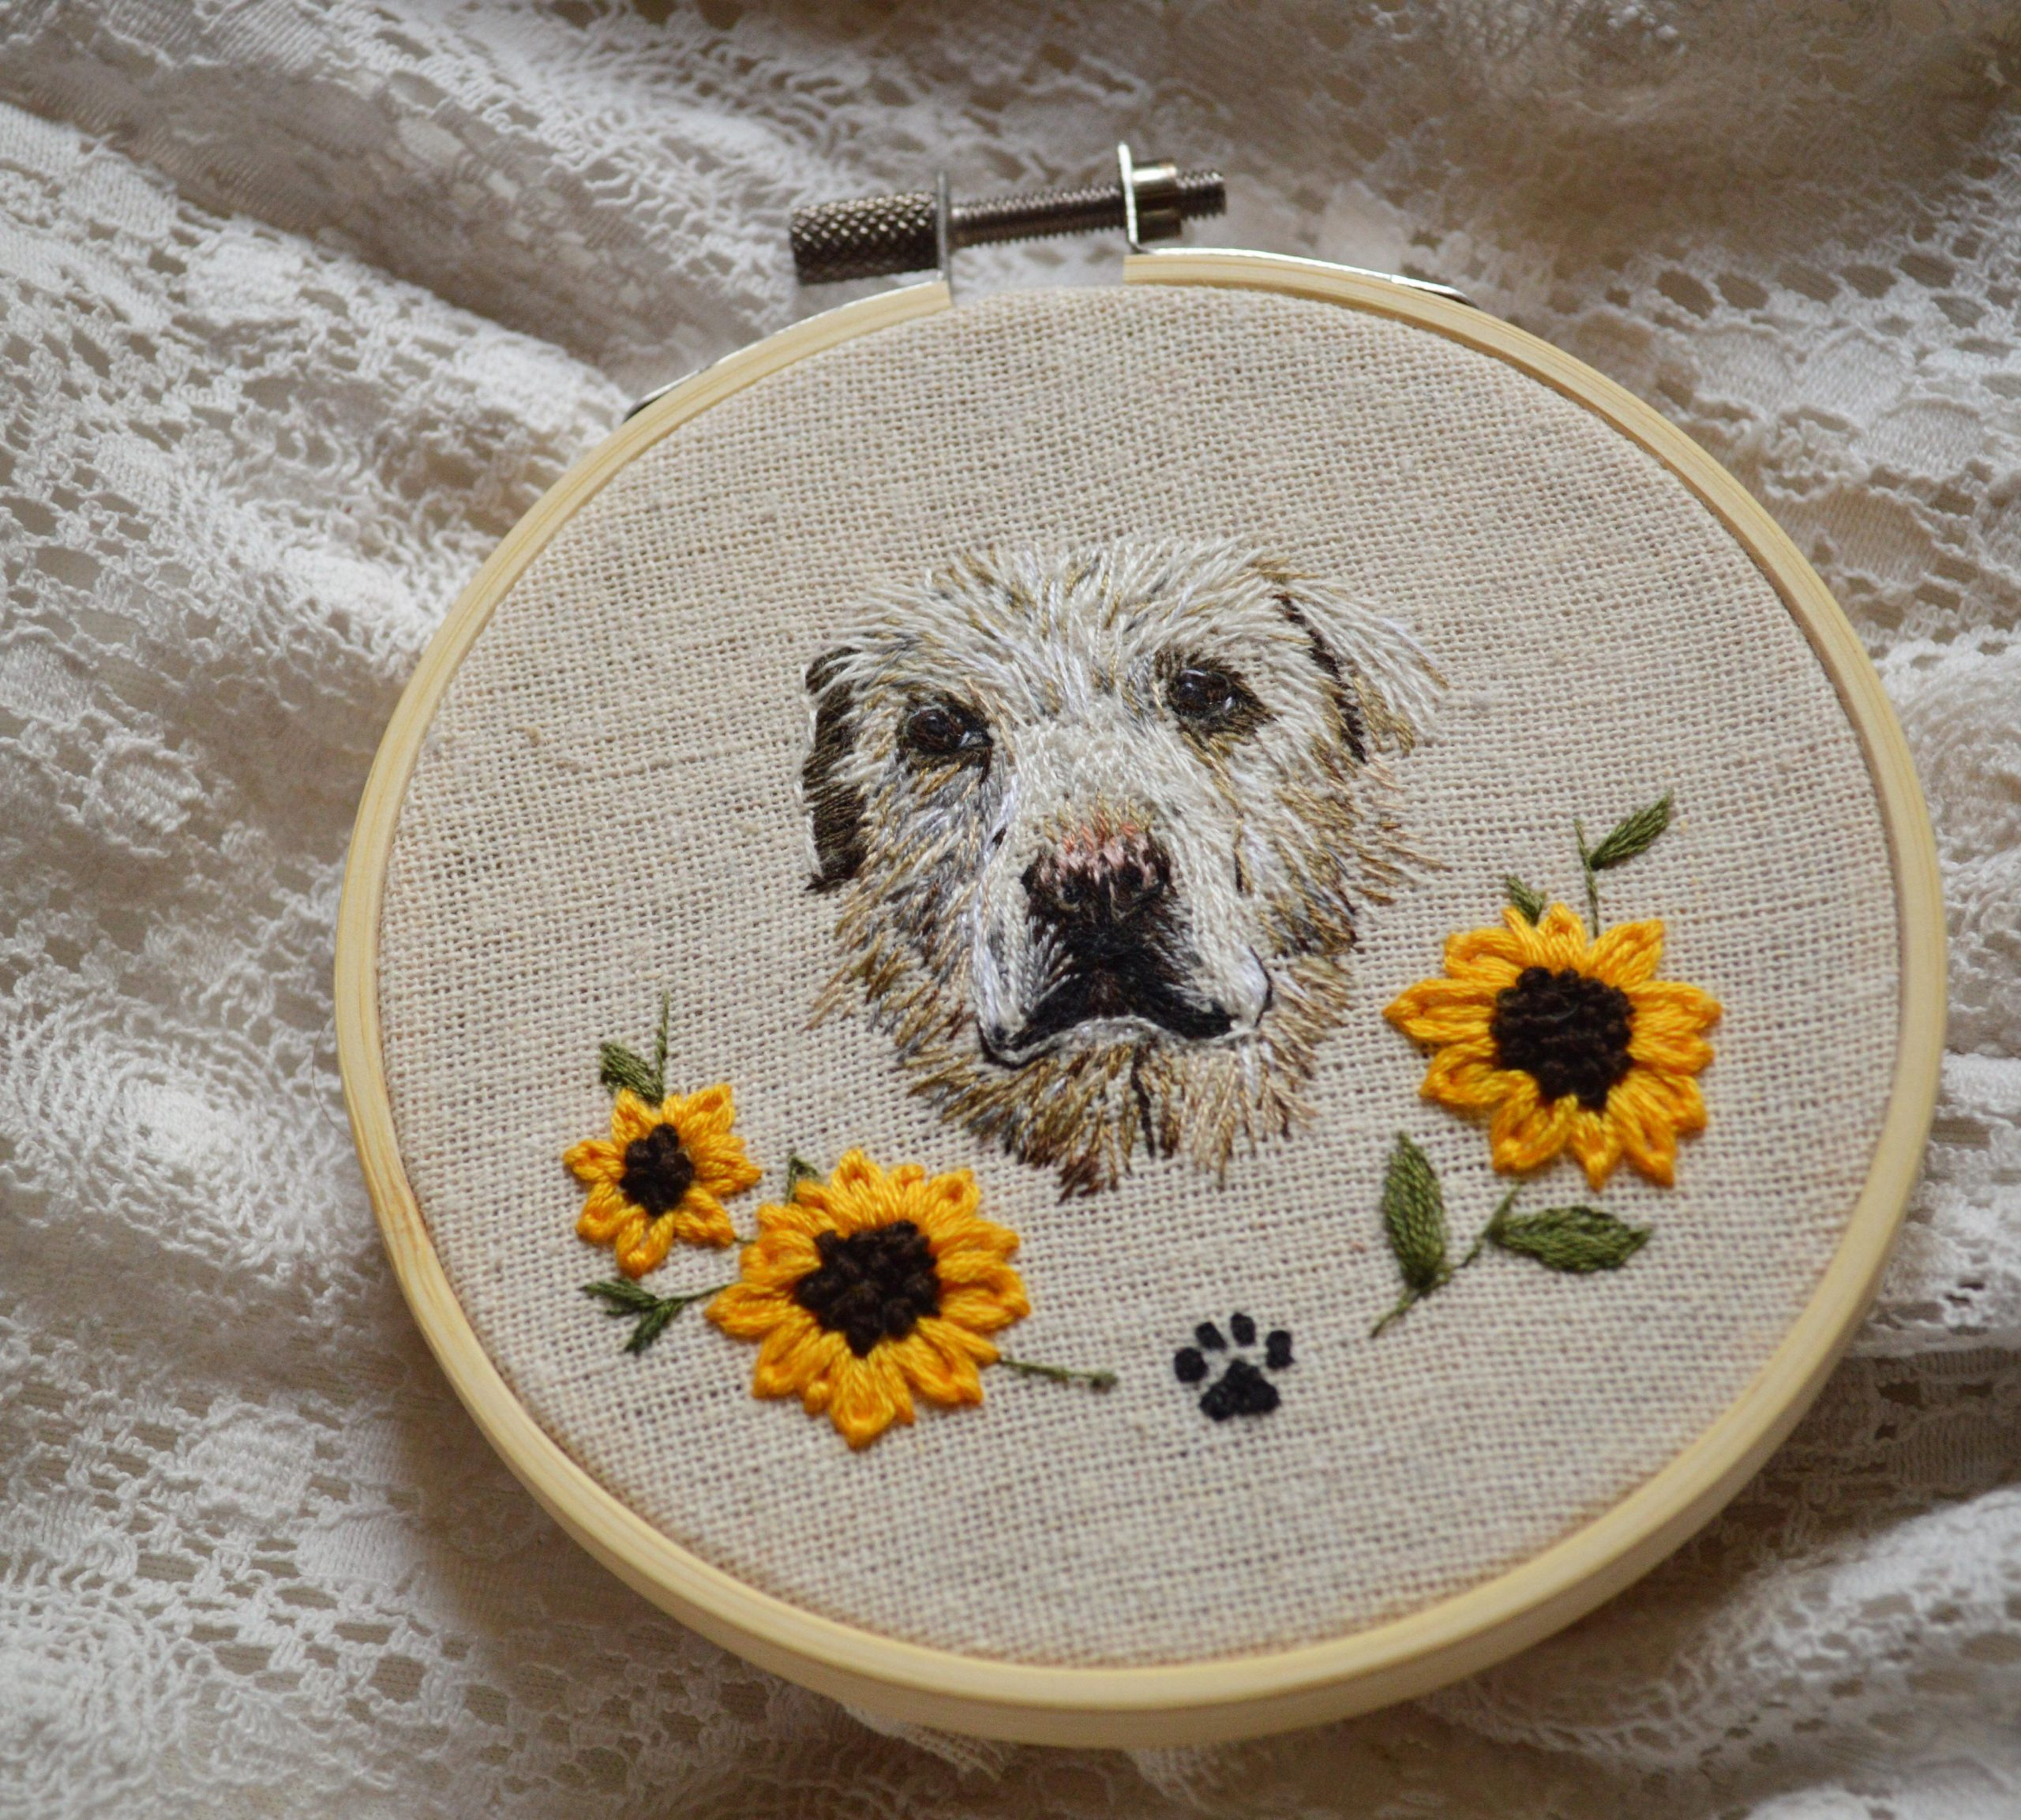 4jazv6q6g4y41 scaled - My first dog portrait and I'm pleasantly surprised by how it turned out! - hobbies, crafts